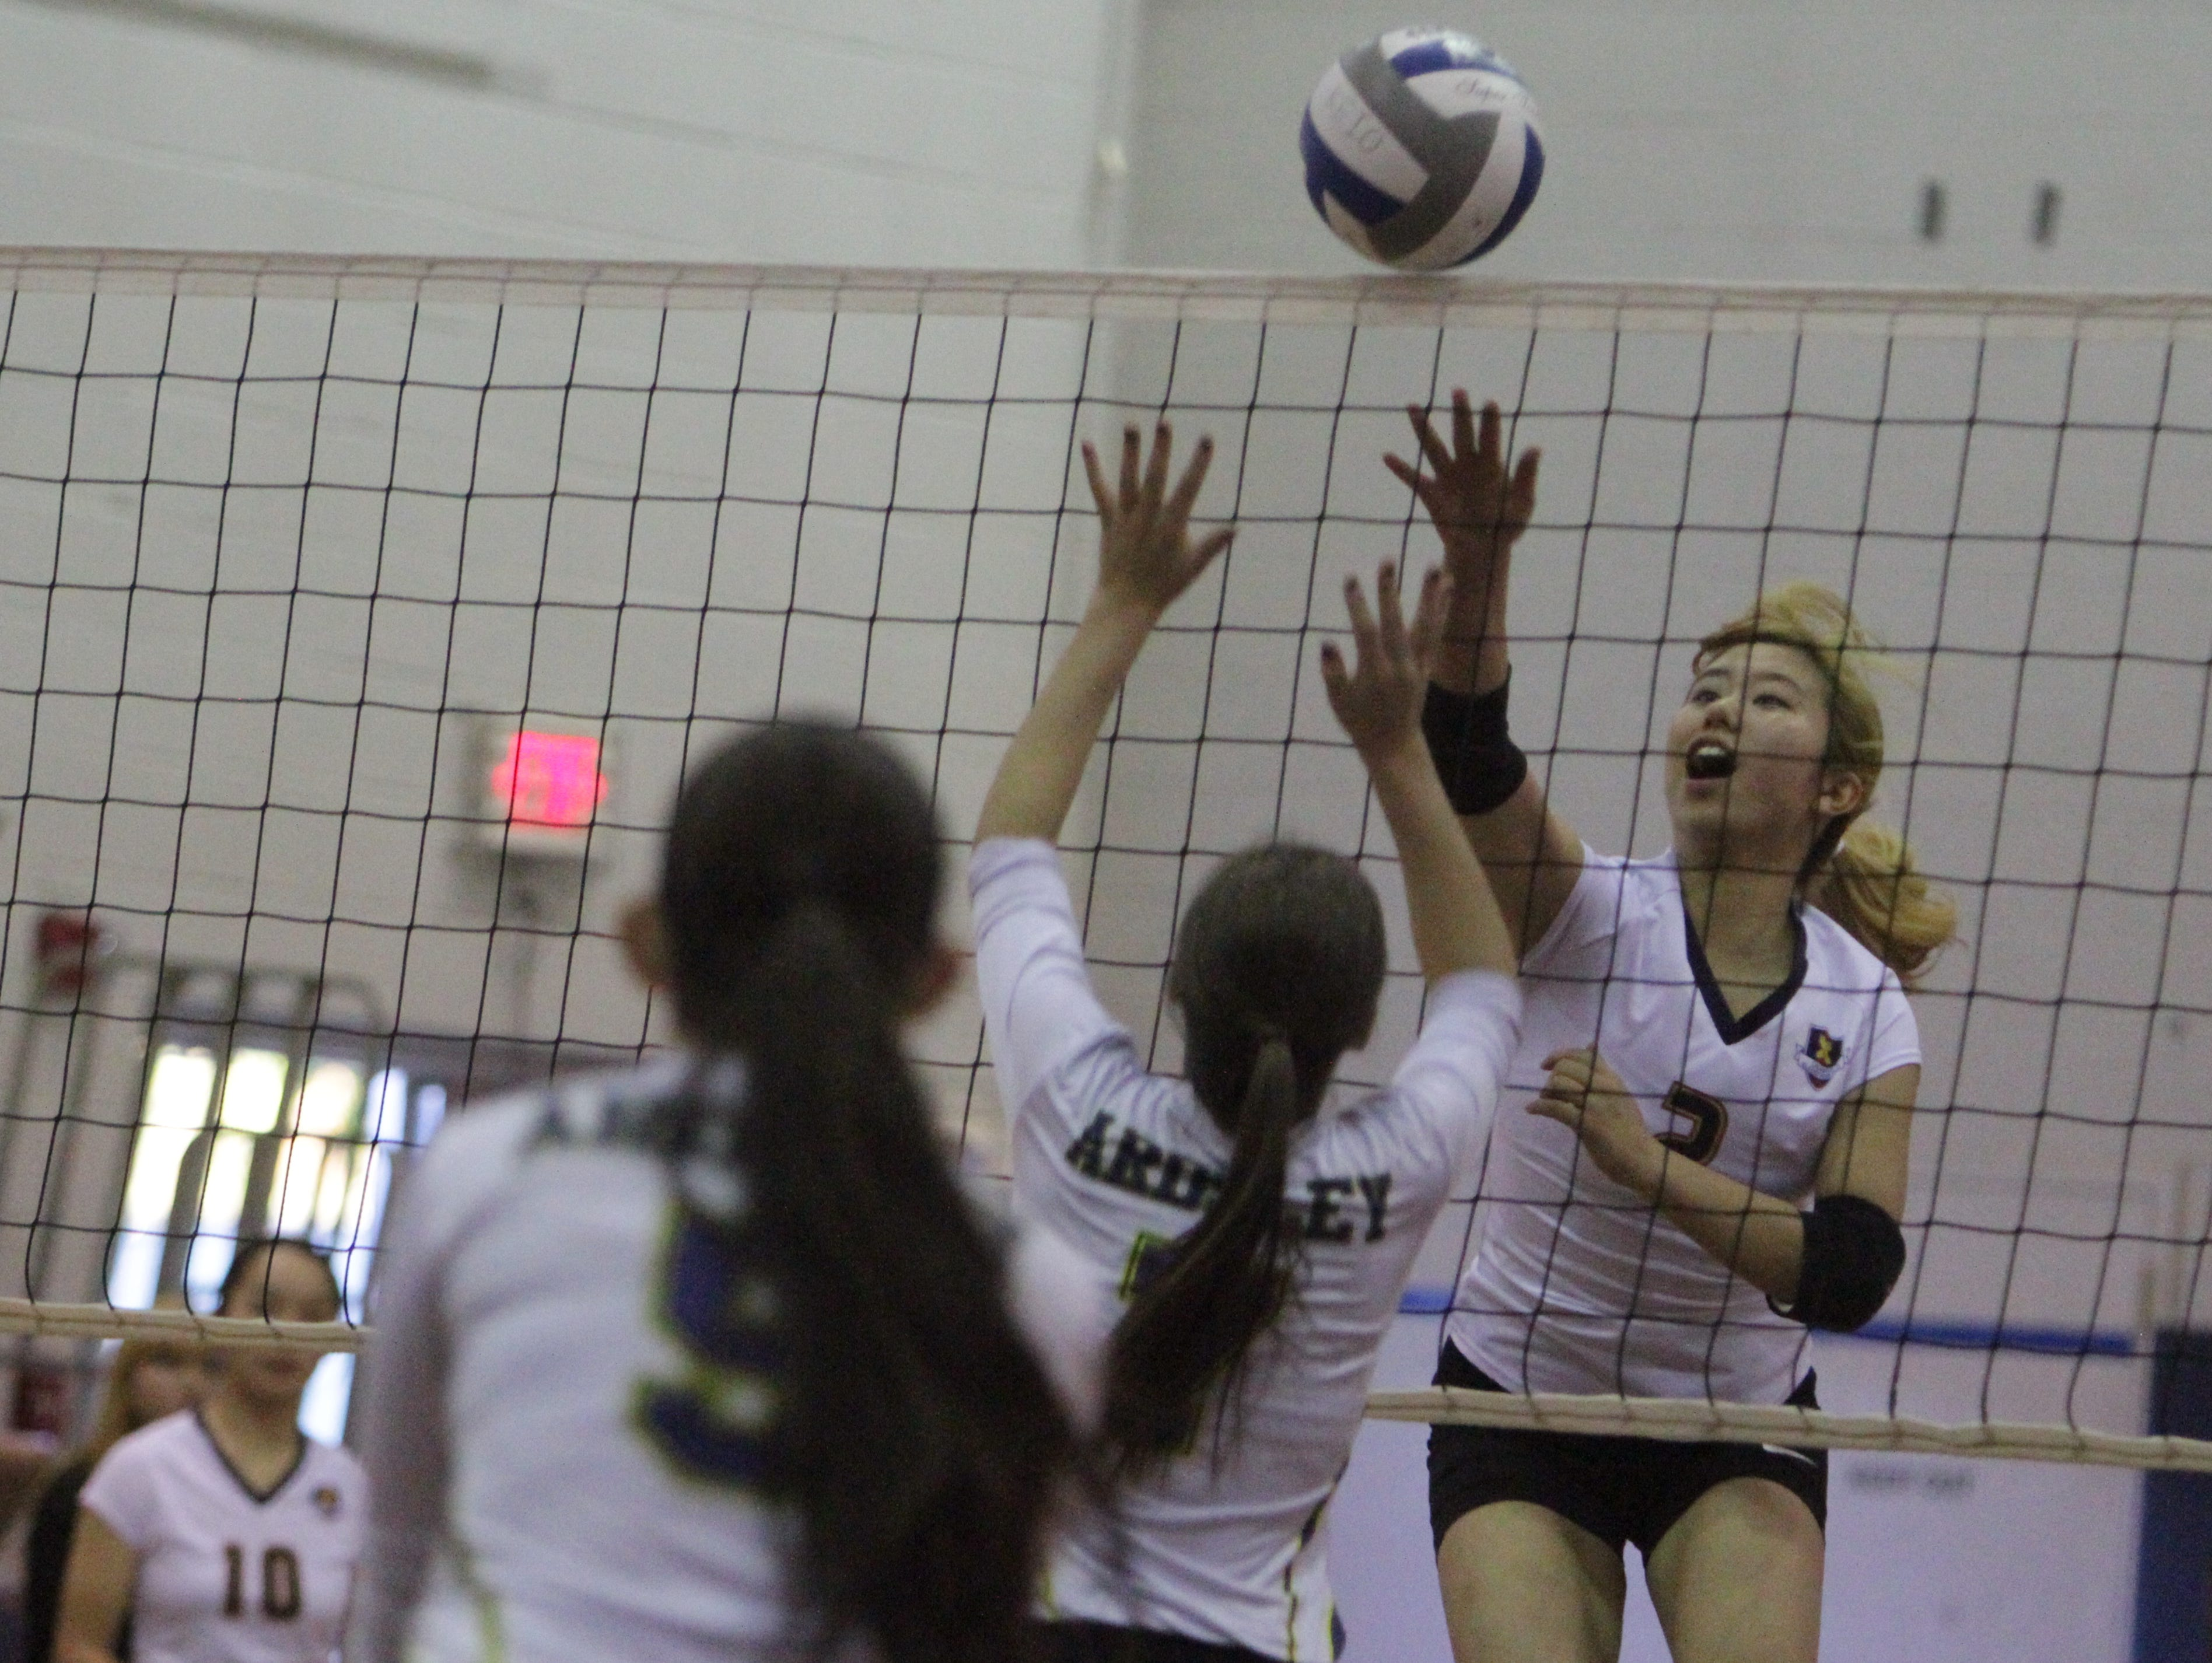 Keio defeated Ardsley in five games during a volleyball match on Oct. 26, 2015.